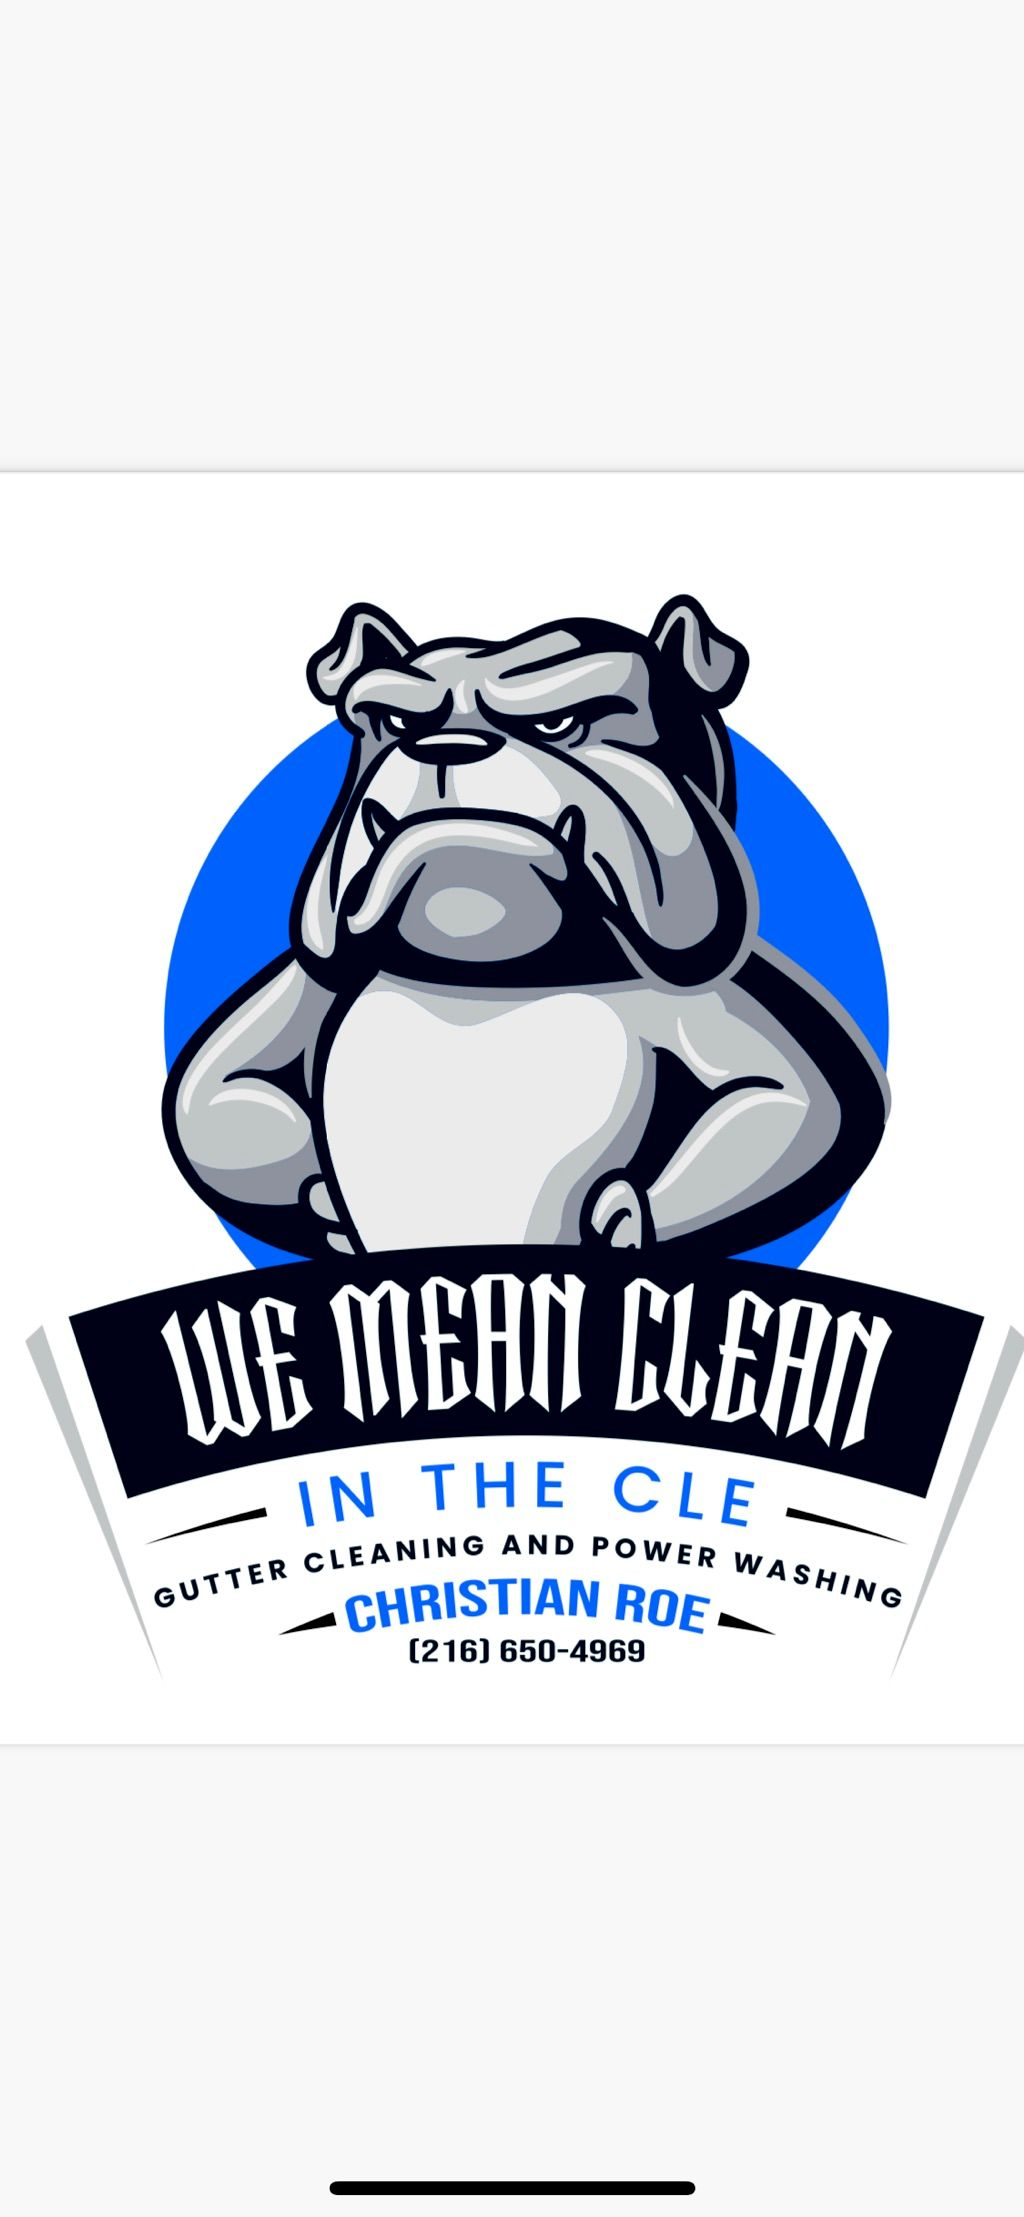 """We Mean Clean """"In The Cle"""""""